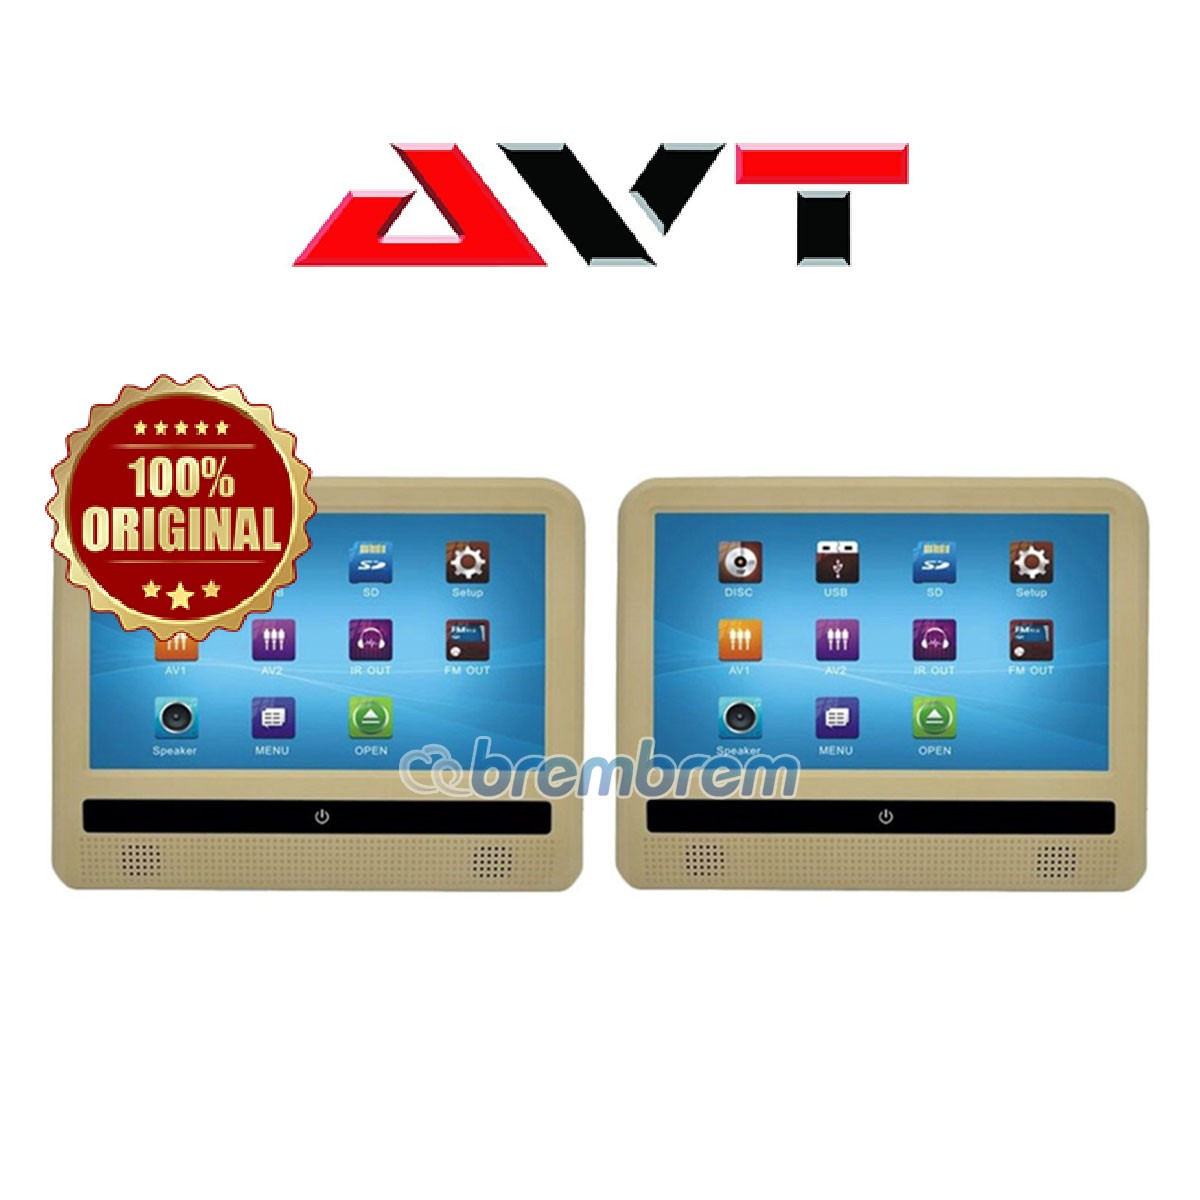 AVT HM 900DM WARNA BEIGE - HEADREST CLIPON